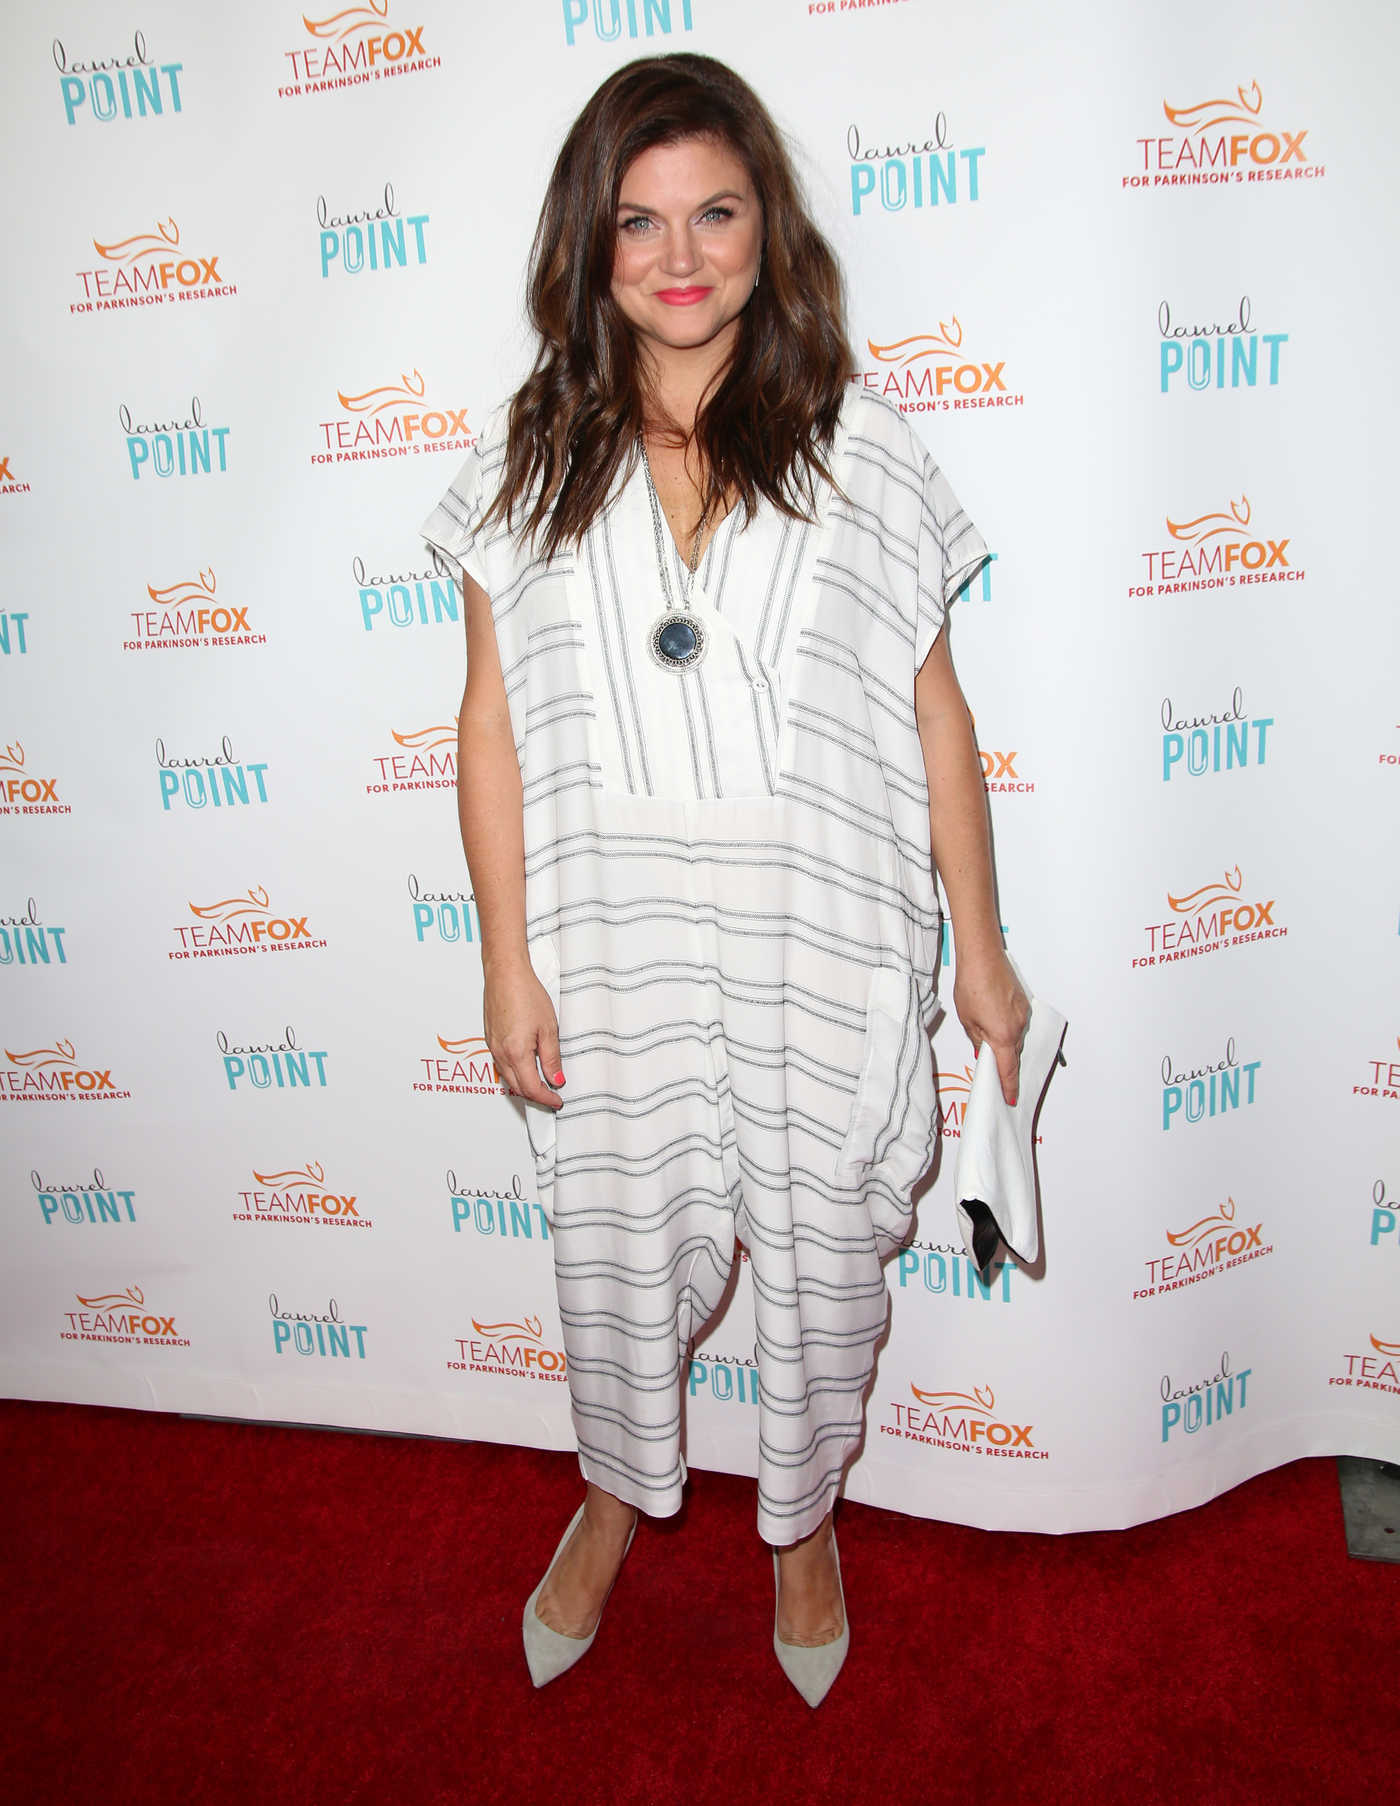 Tiffani Thiessen at the Raising The Bar to End Parkinsons Fundraiser in Los Angeles 07/27/2016